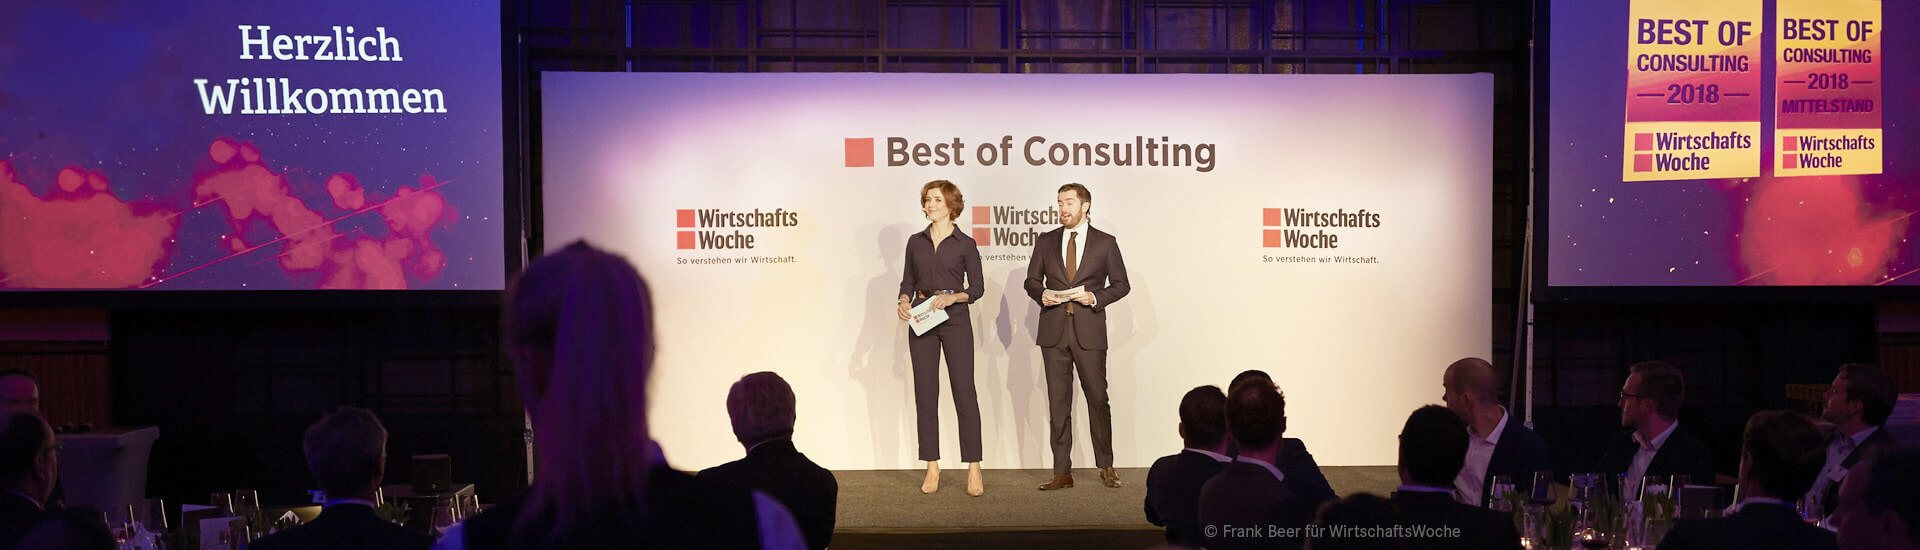 Mercedes-Benz Consulting gewinnt bei Best of Consulting 2018